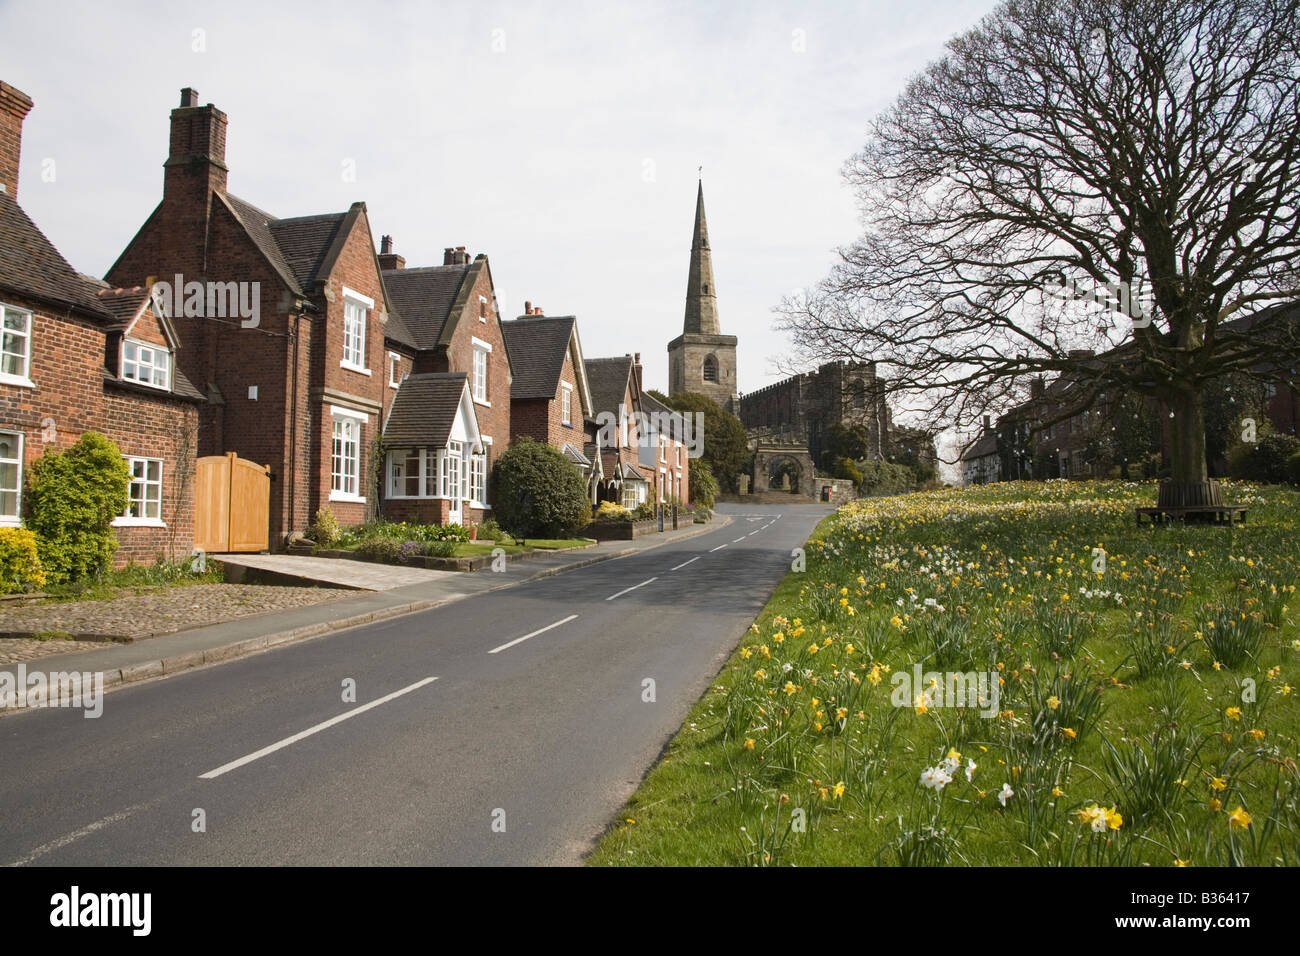 Astbury Cheshire England UK April The houses are set around the daffodil covered triangular village green in this - Stock Image